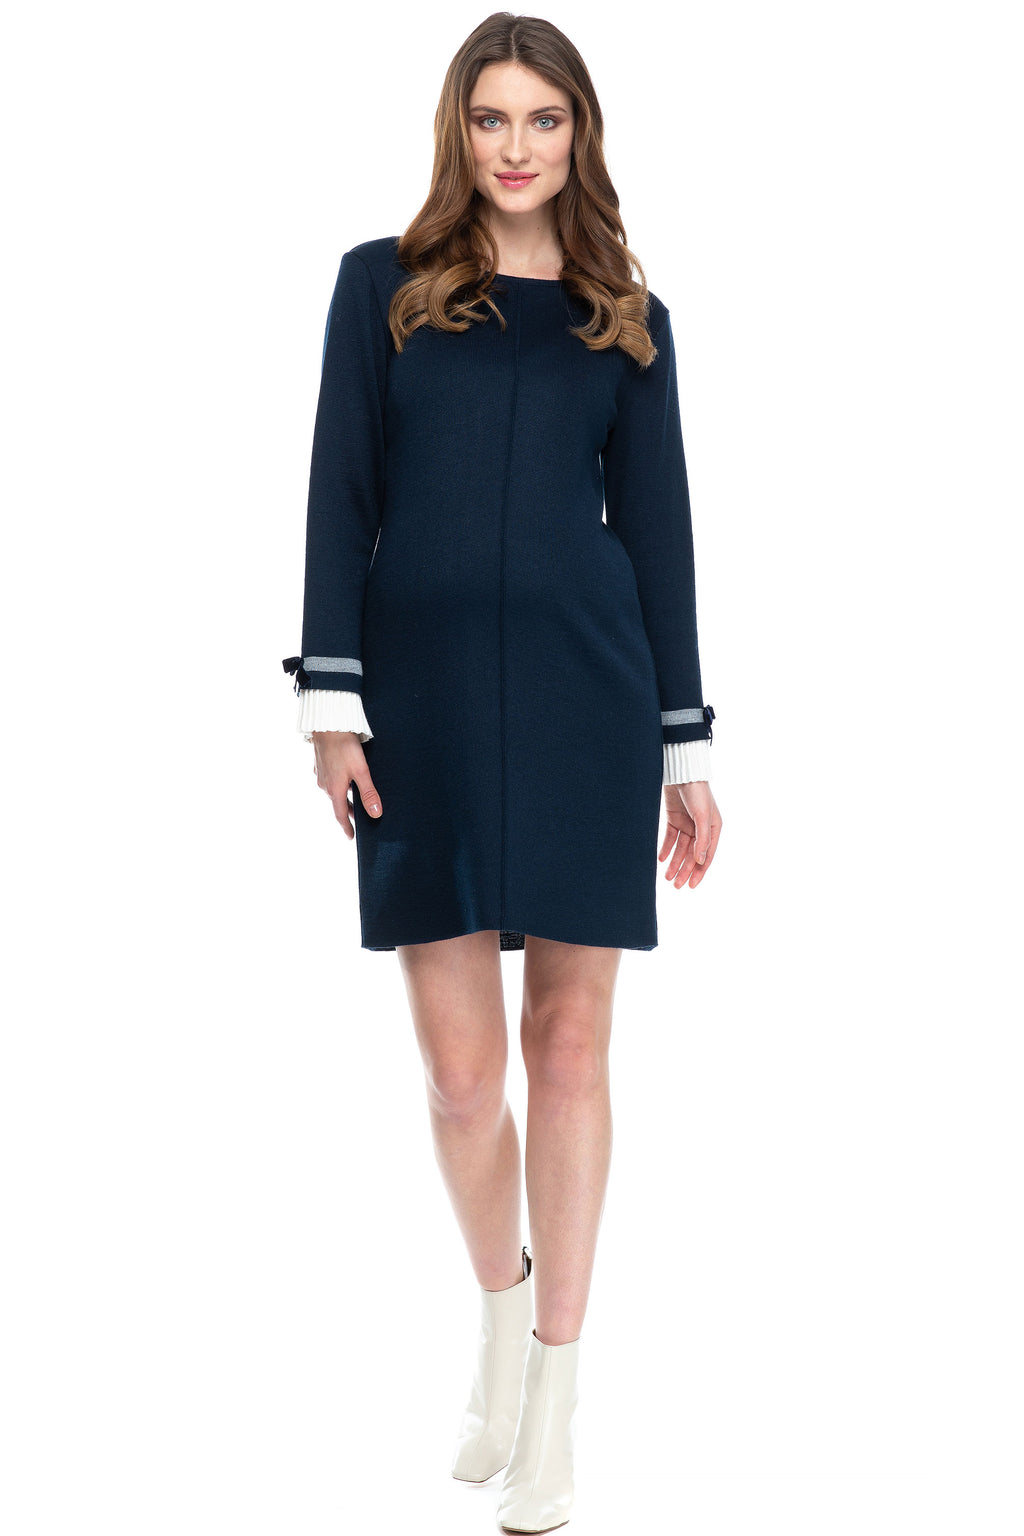 Pietro Brunelli Mansfield  Navy Sweater Maternity Dress